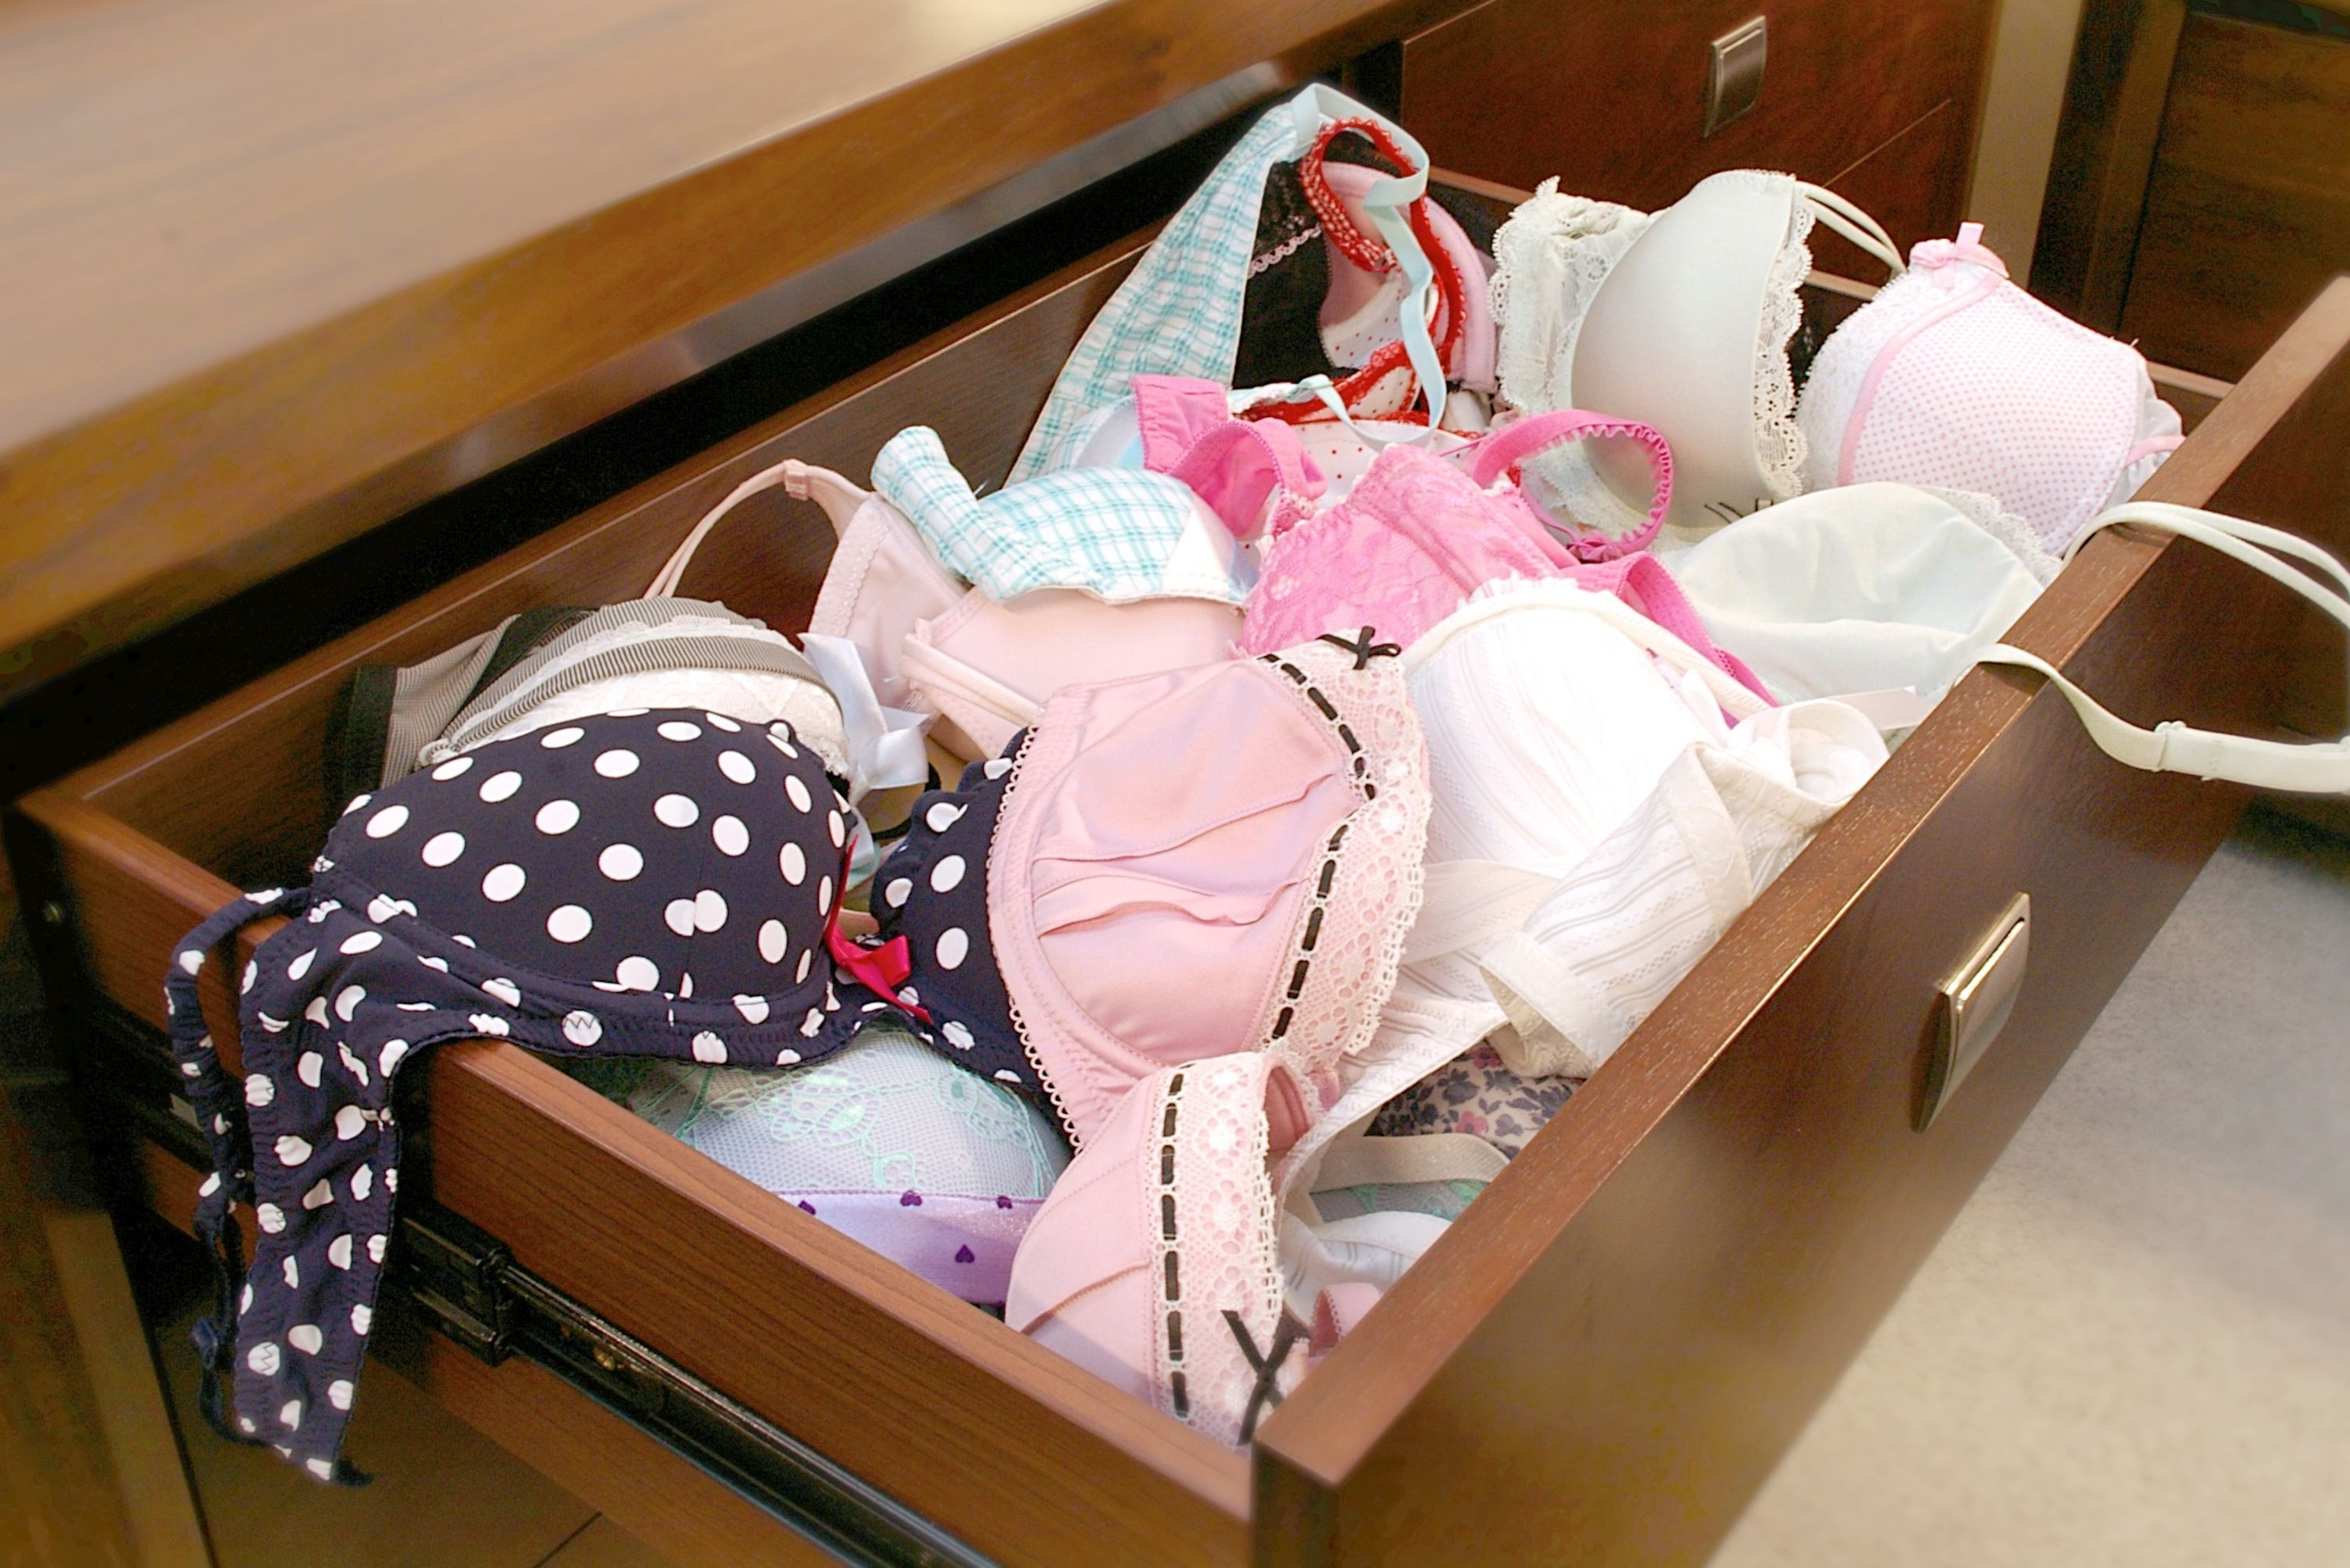 fb1034ce6809a Without Boobie Trap Bra Storage System (how most of our drawers look) Bras  are getting squashed